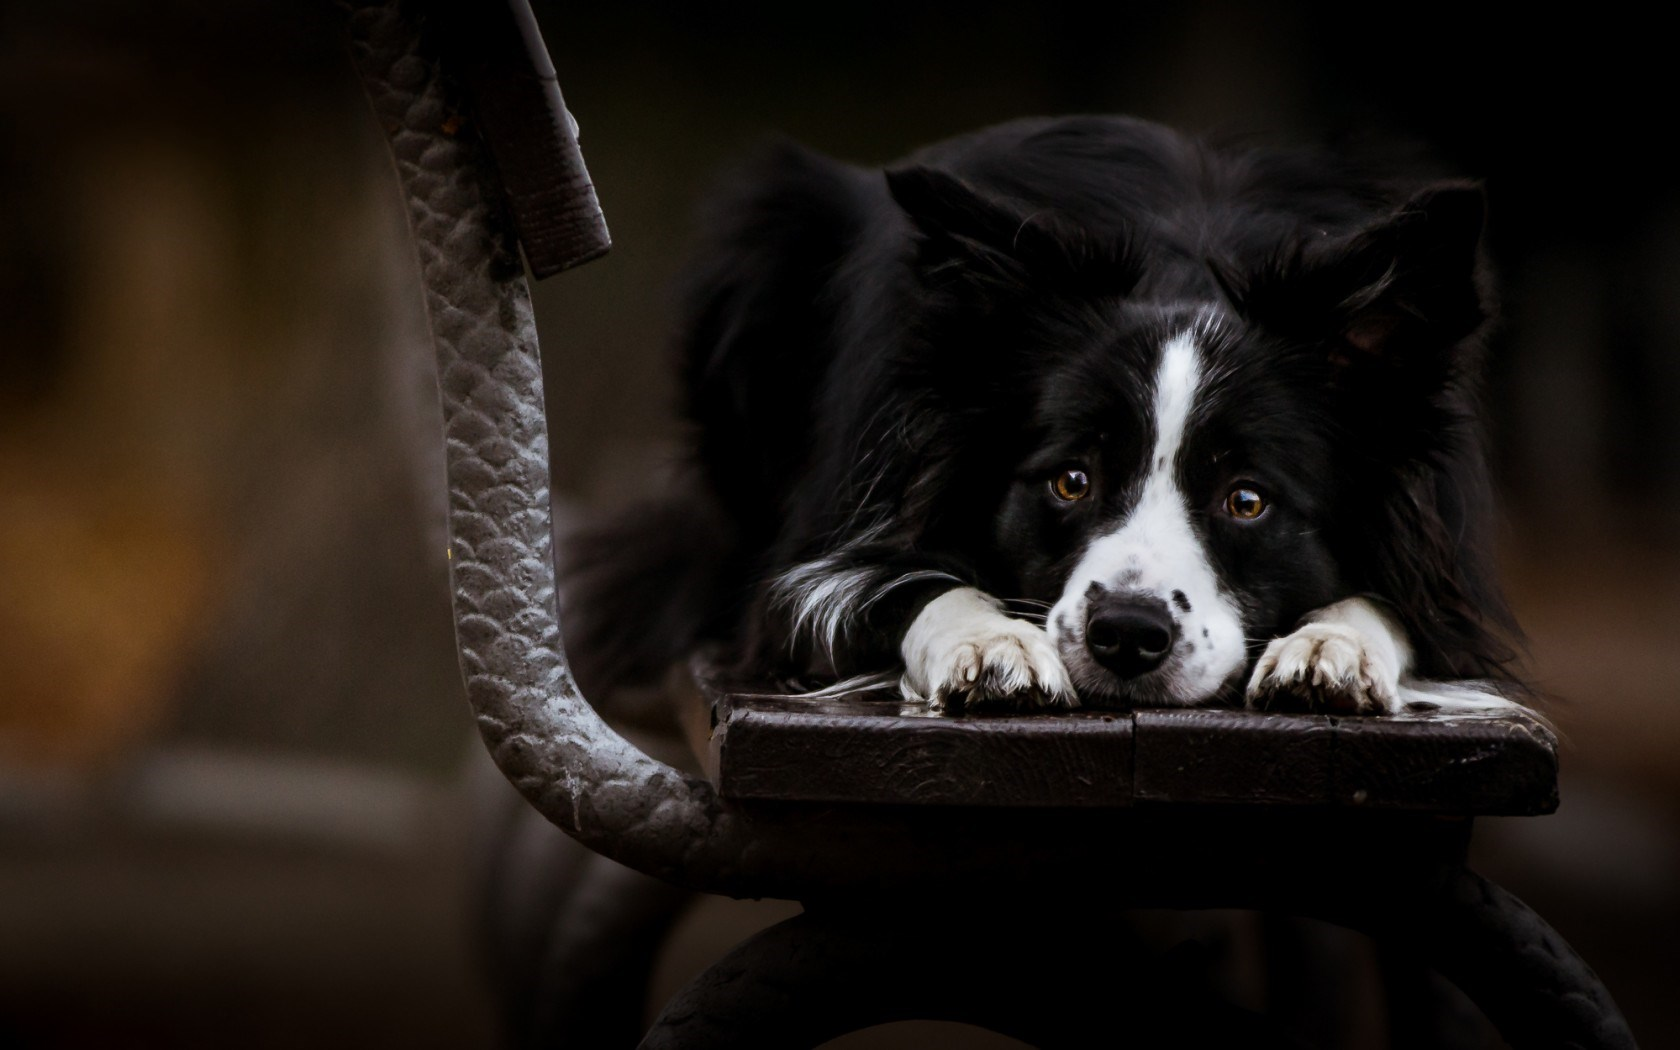 dog hd dark background